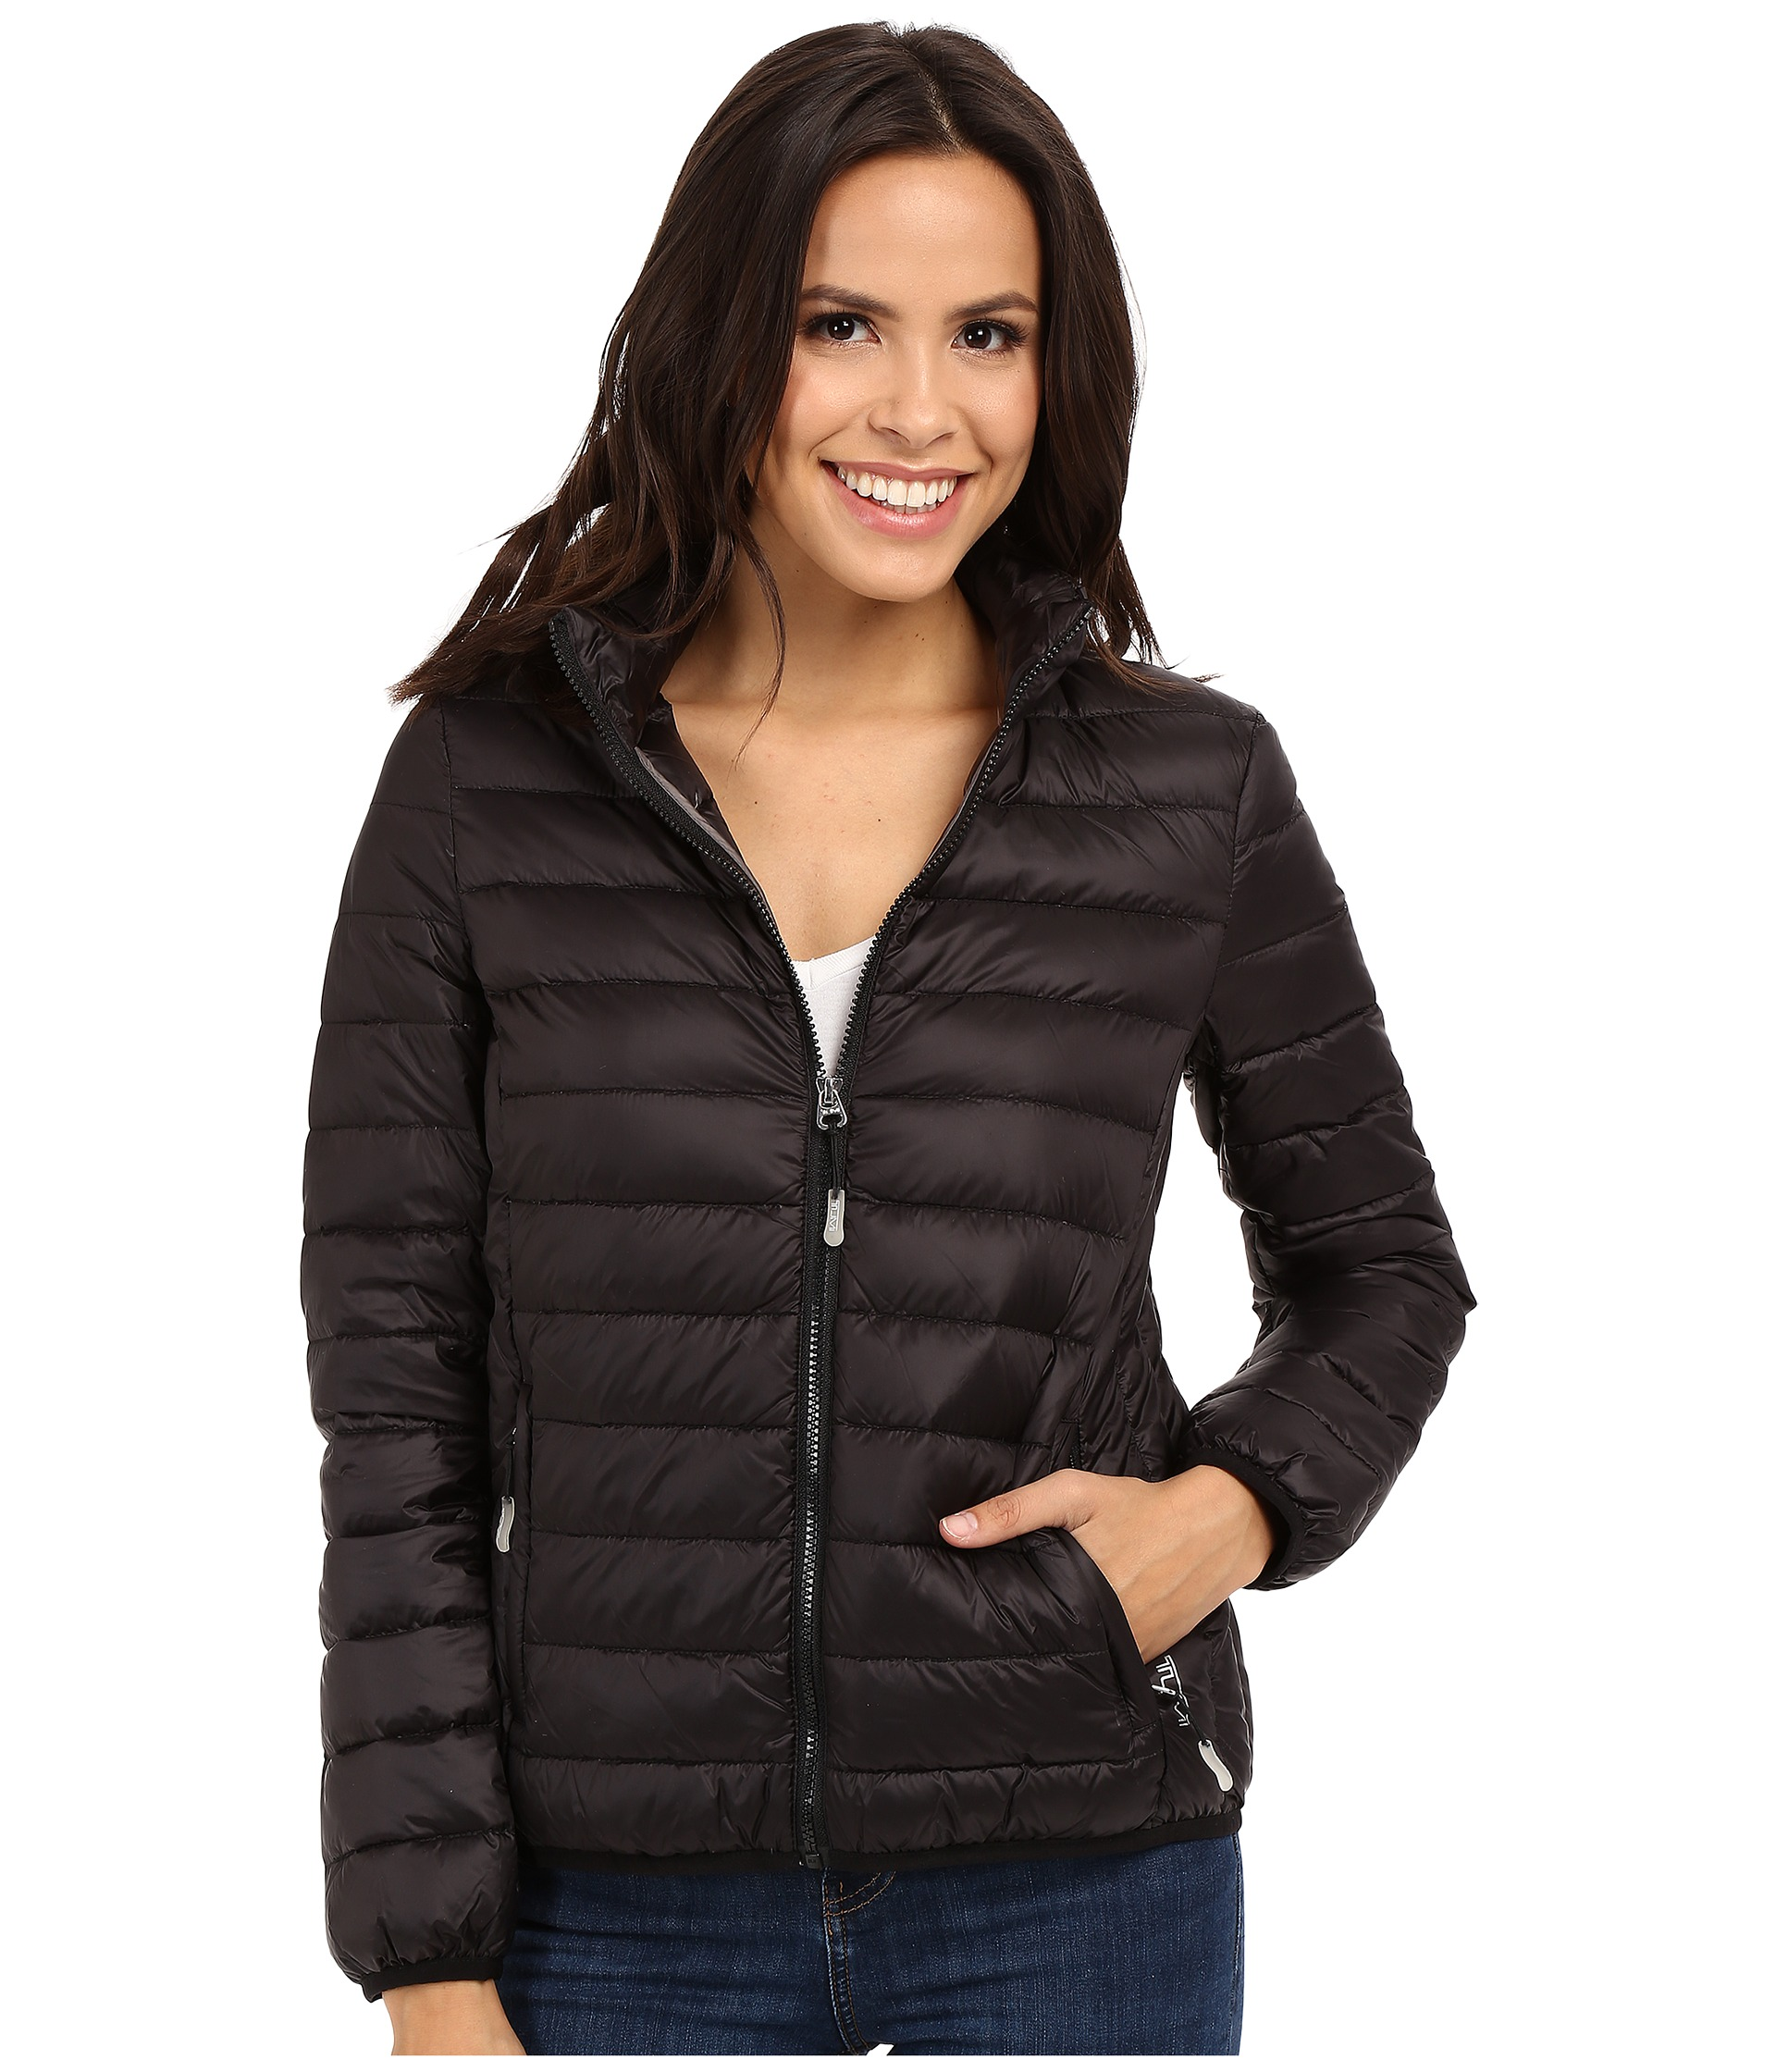 Tumi Clairmont Packable Travel Puffer Jacket At Zappos Com